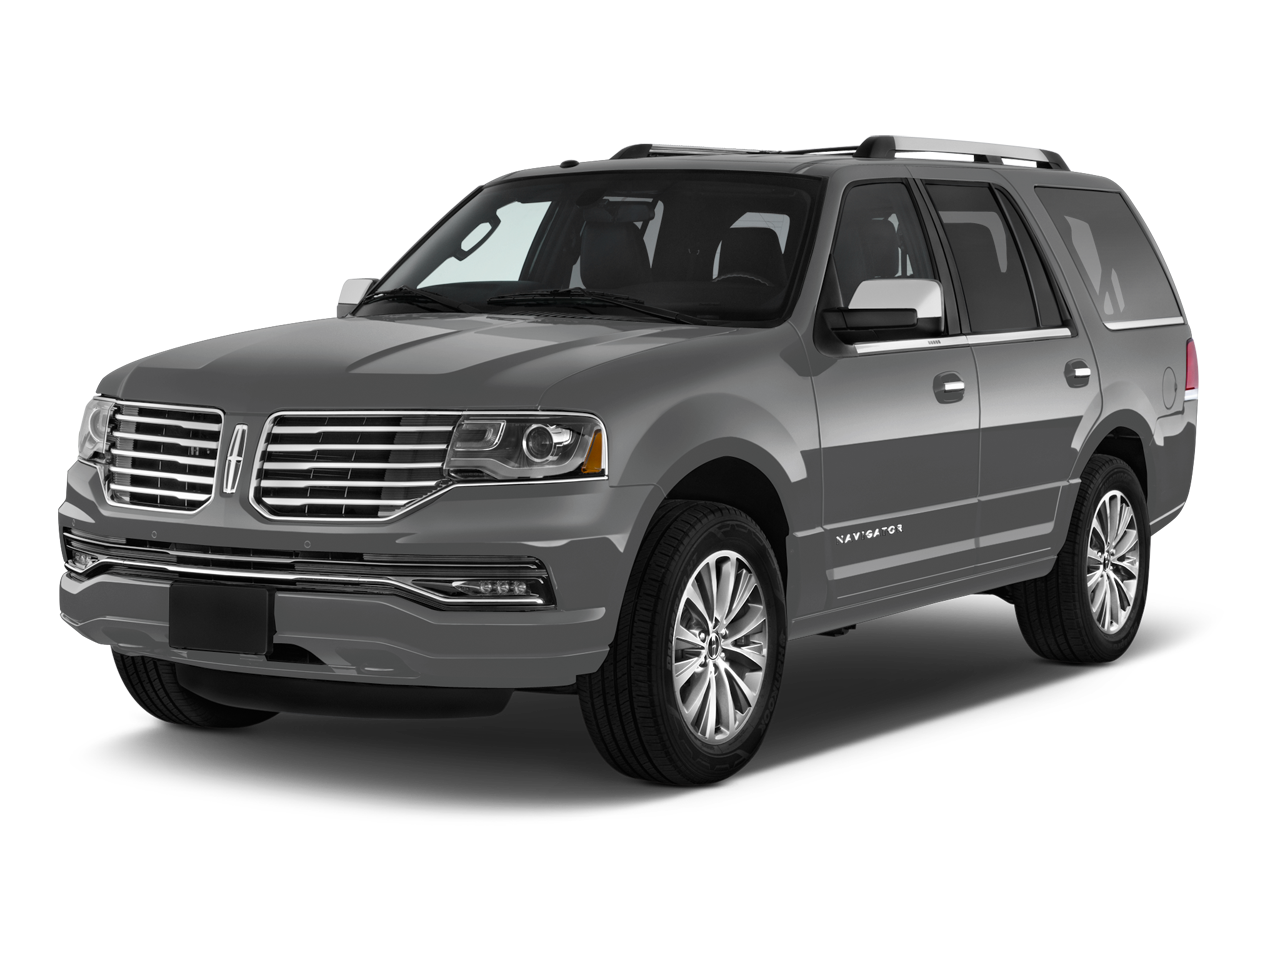 new lincoln navigator l between 79 001 and 80 000 for sale preston motor. Black Bedroom Furniture Sets. Home Design Ideas